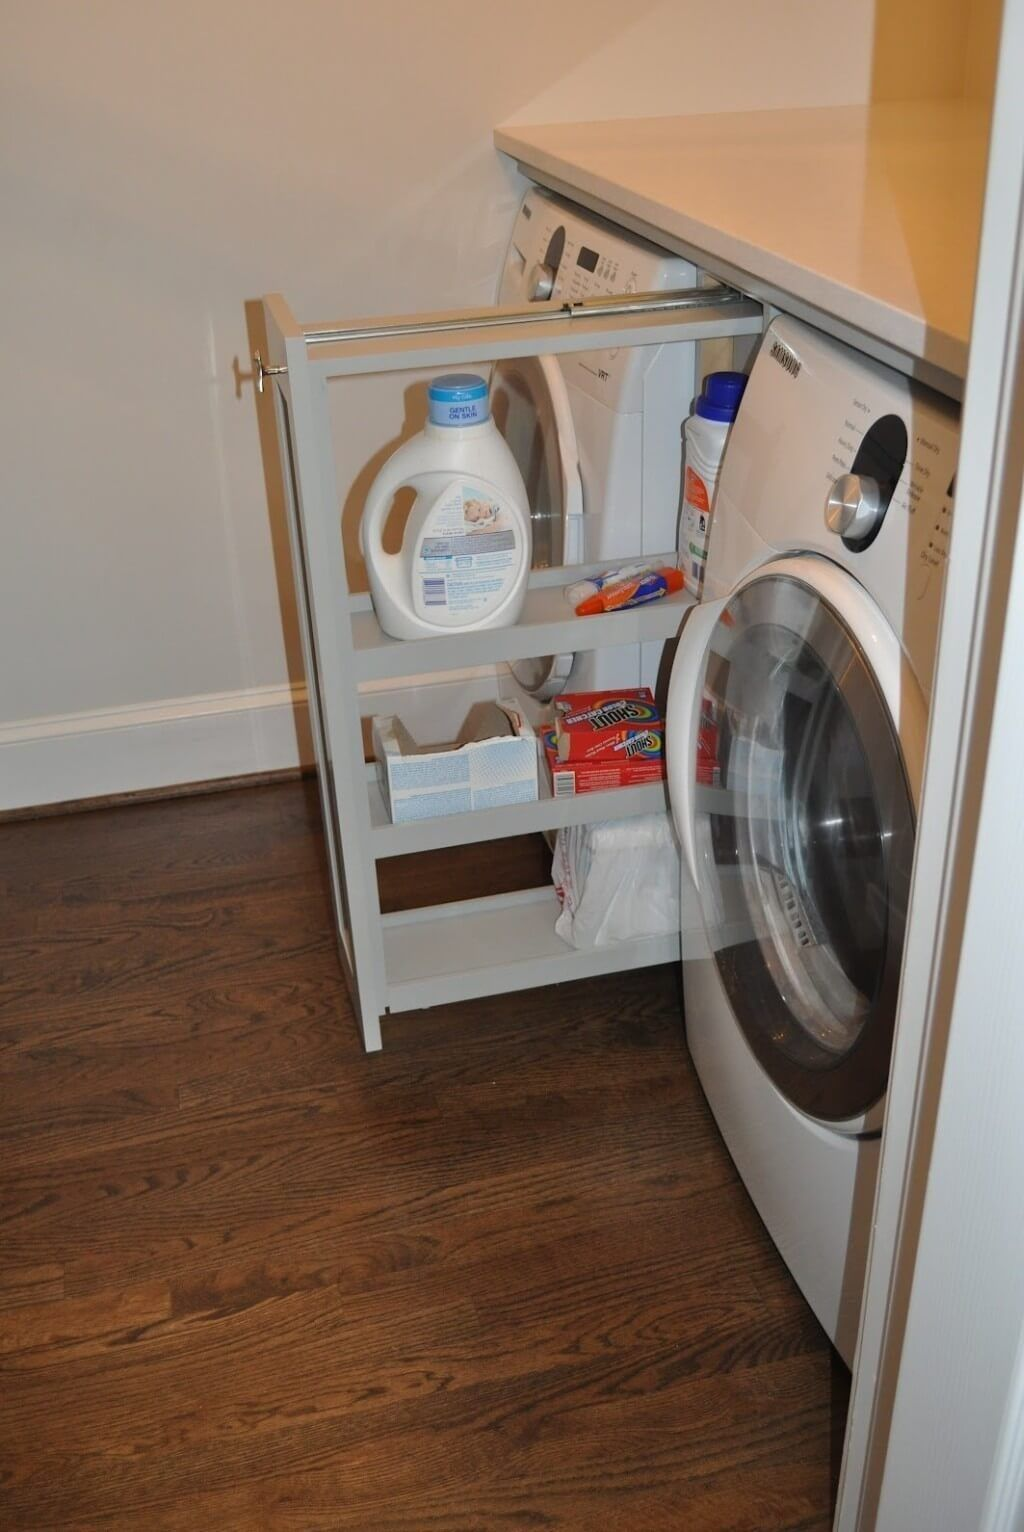 Modern Small Pull Out Laundry Essentials Metal Rack In Between Washer And Dryer Laundry Room Storage Laundry Room Organization Small Laundry Room Organization